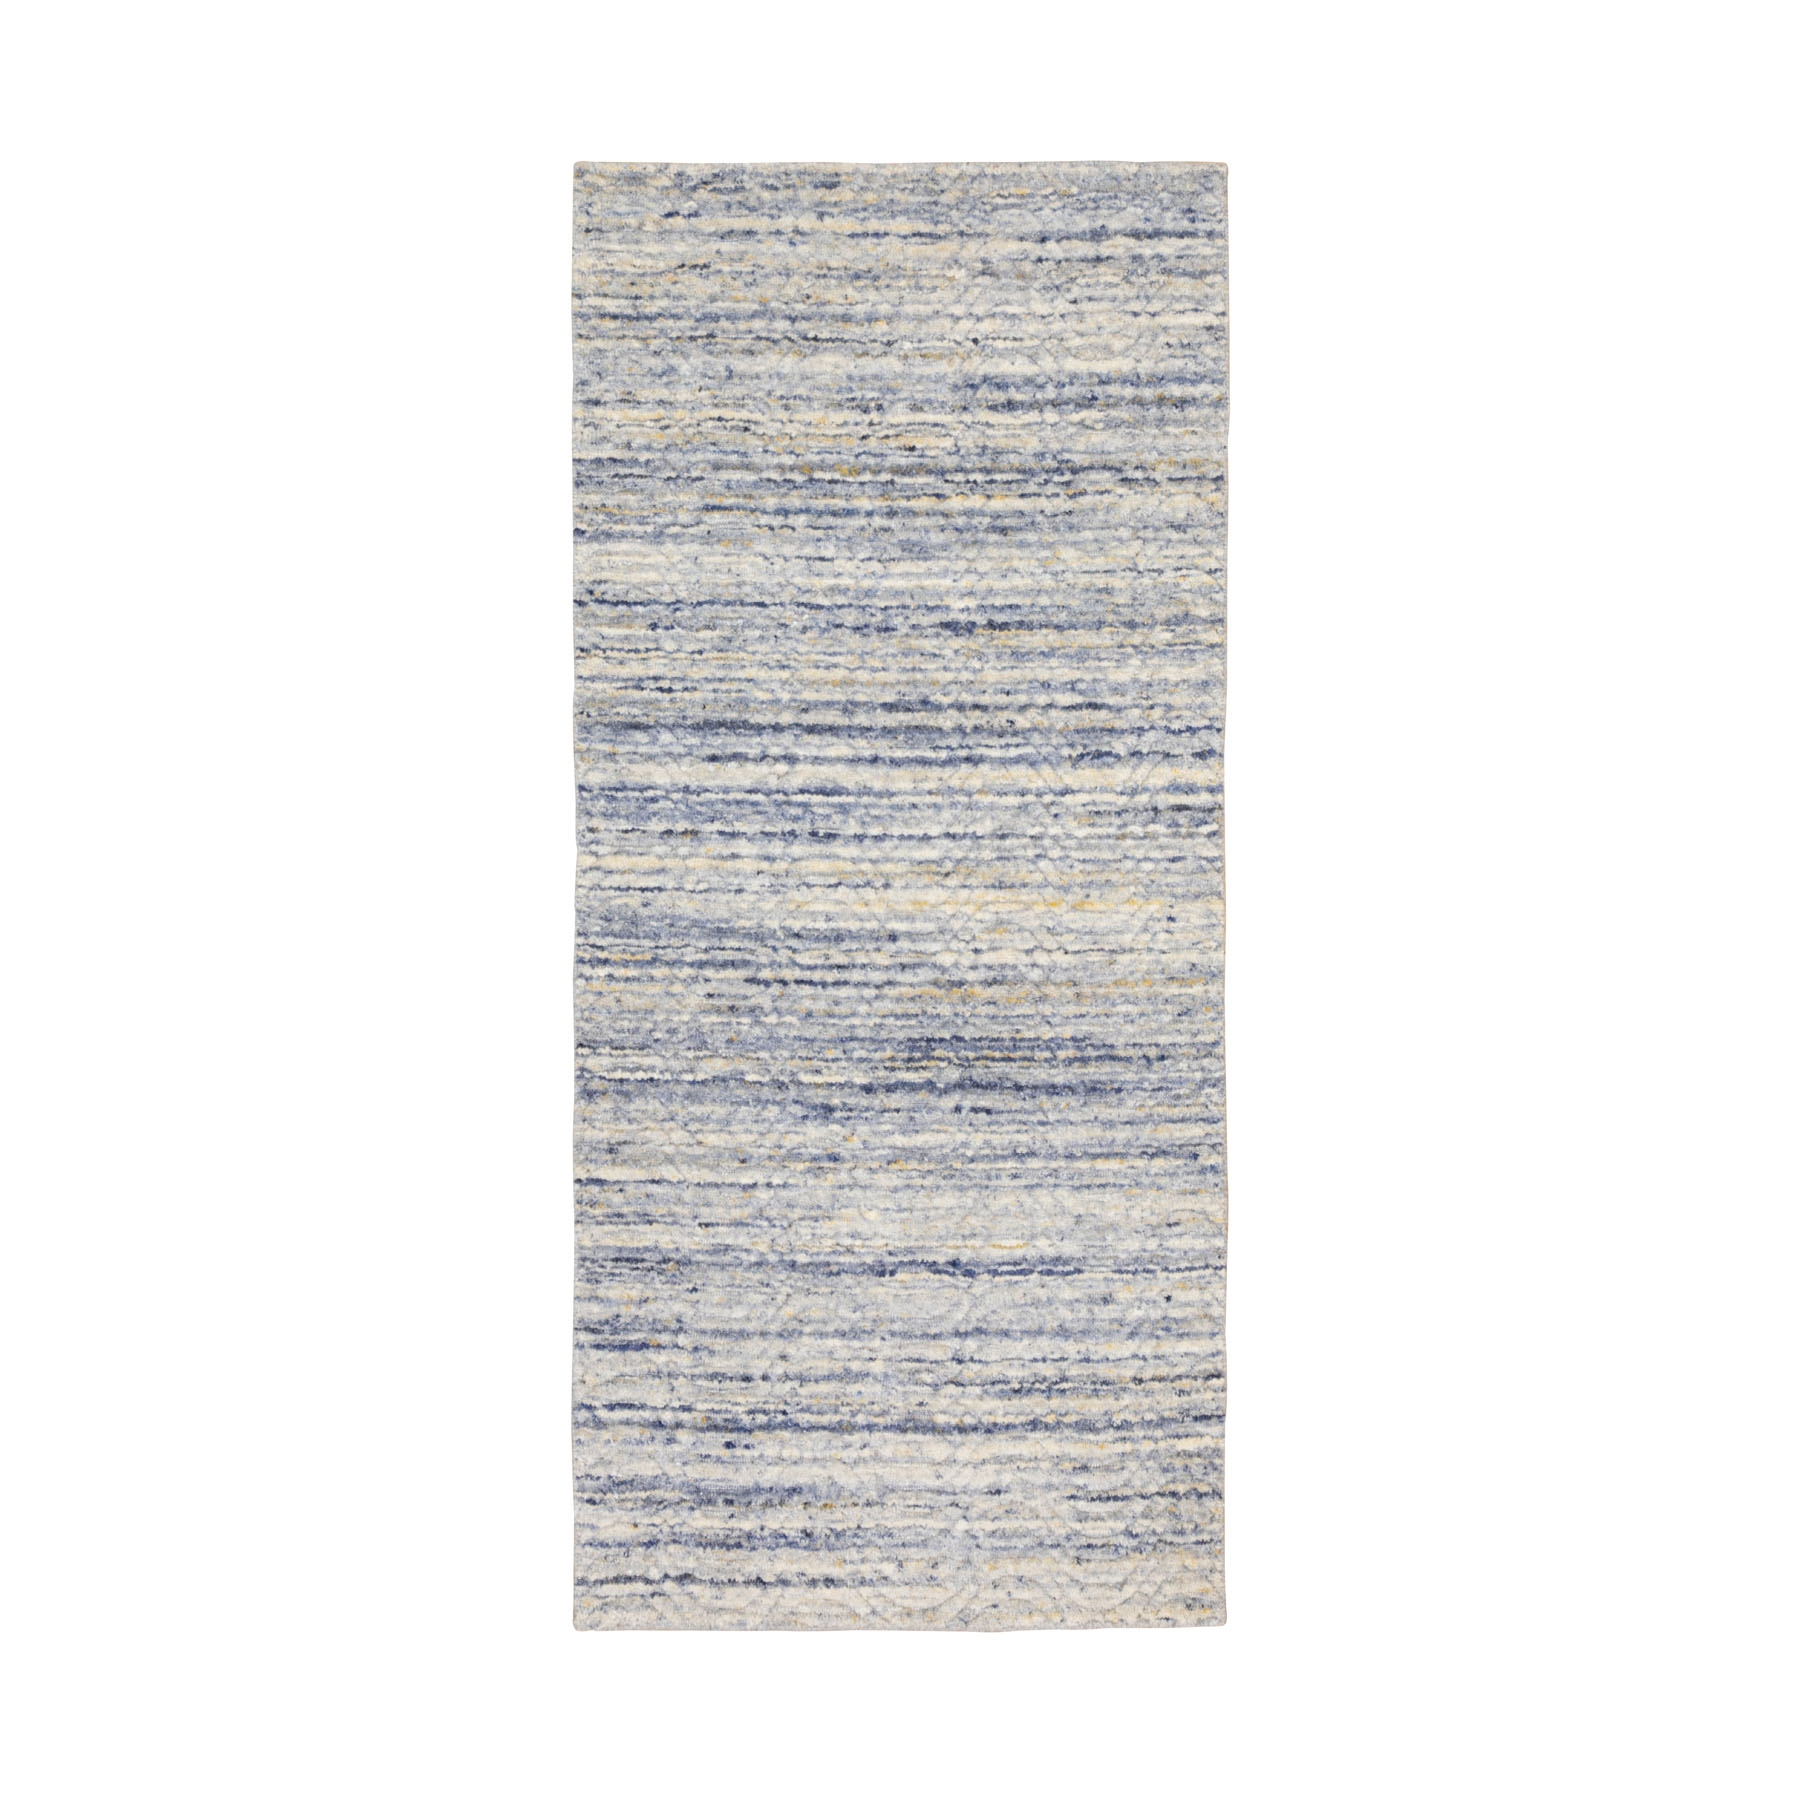 Mid Century Modern Collection Hand Loomed Grey Rug No: 01116802